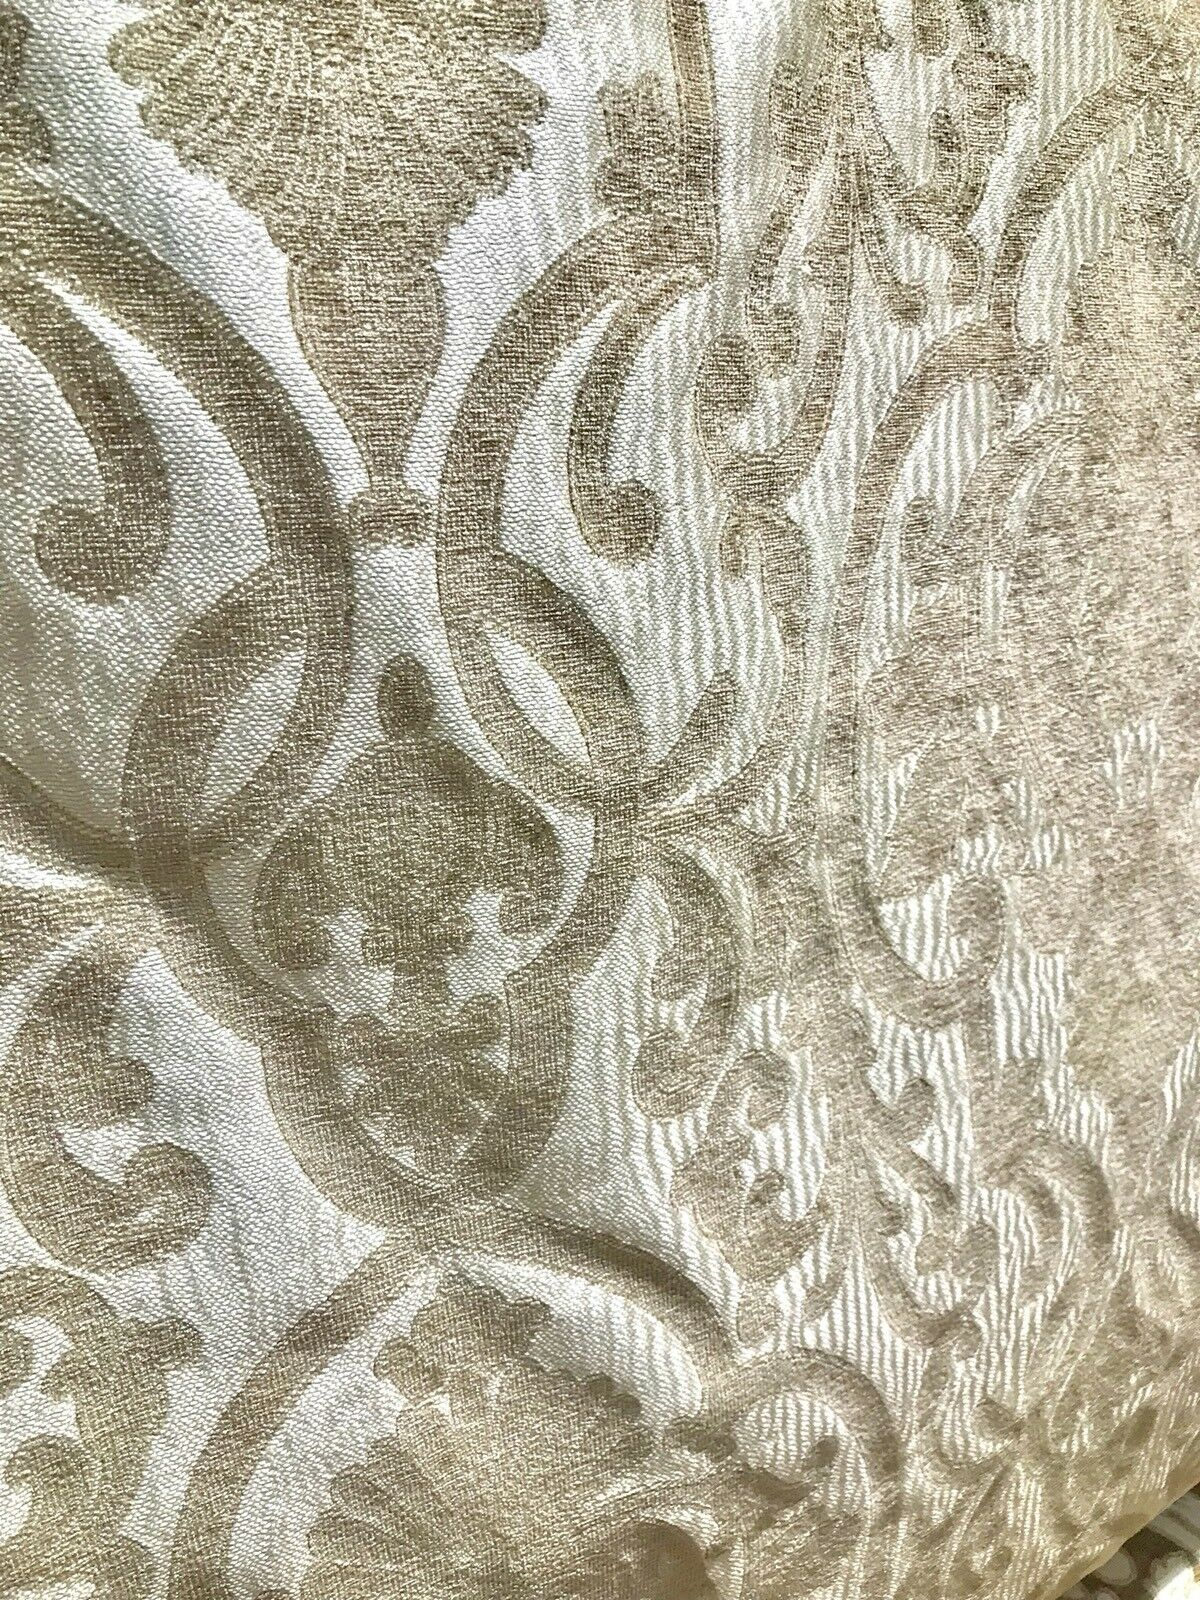 SWATCH Double Sided Burnout Chenille Velvet Fabric- Taupe Upholstery Damask